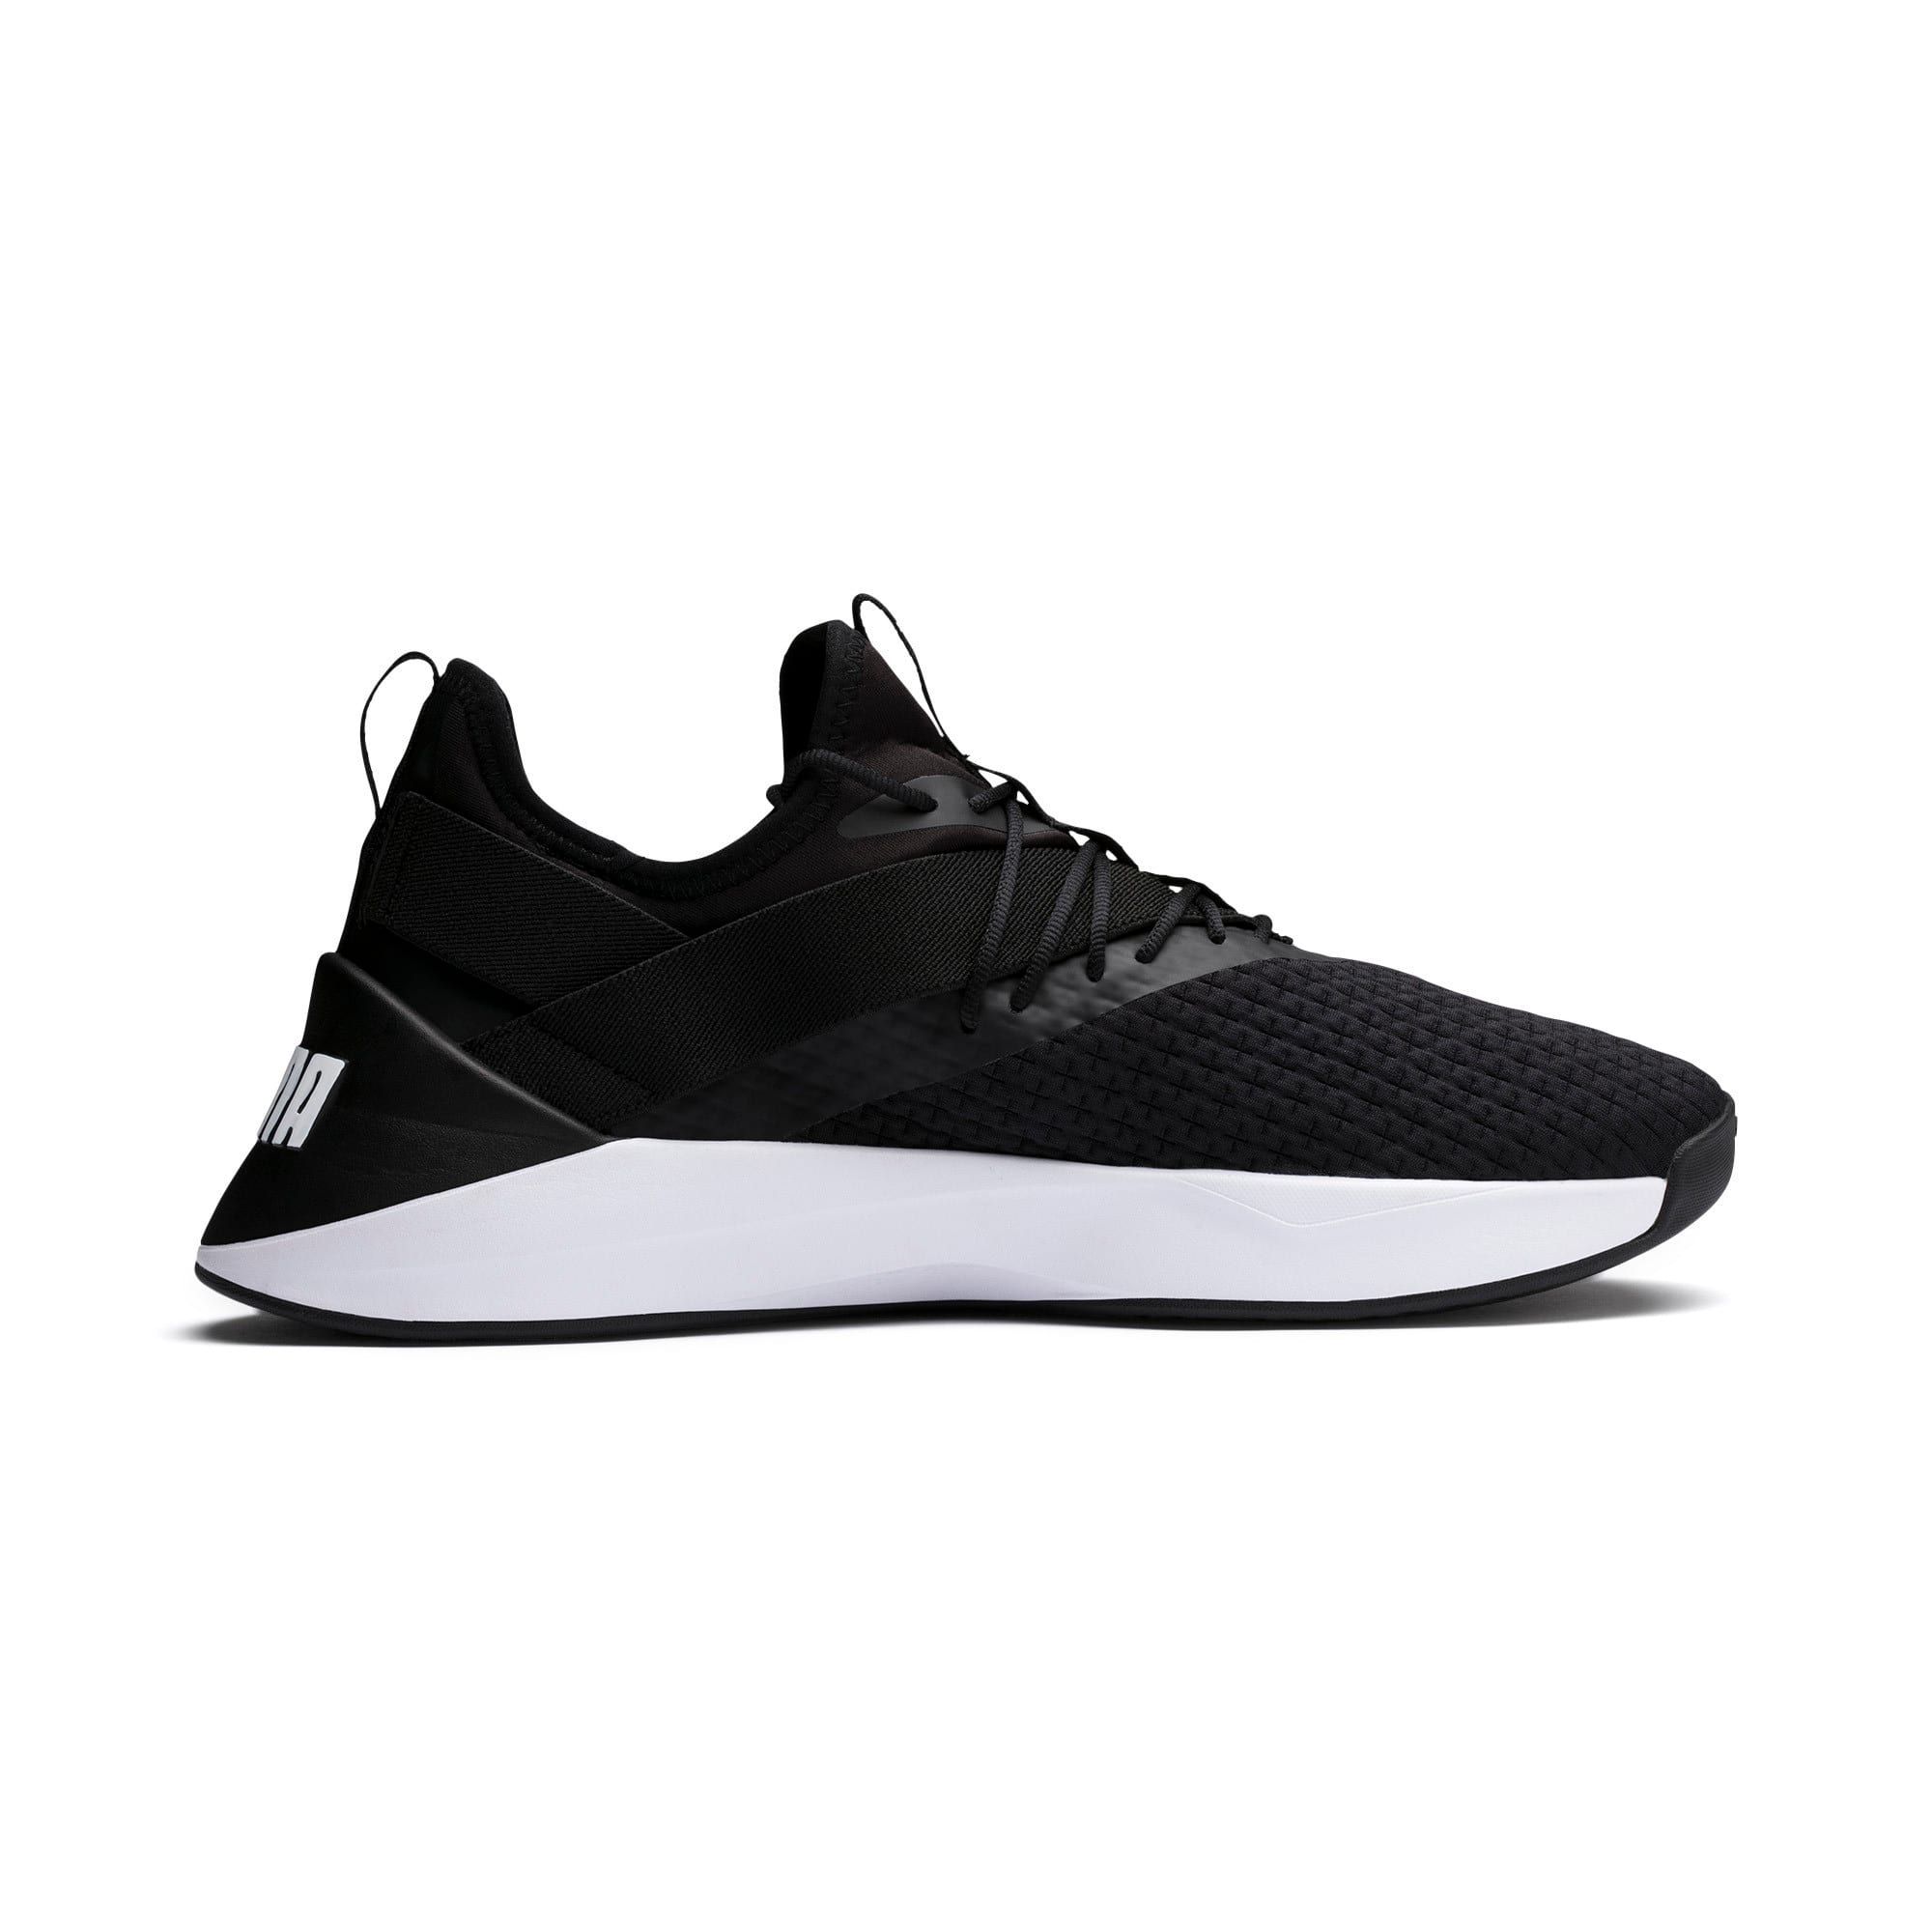 Thumbnail 7 of Jaab XT sneakers voor heren, Puma Black-Puma White, medium